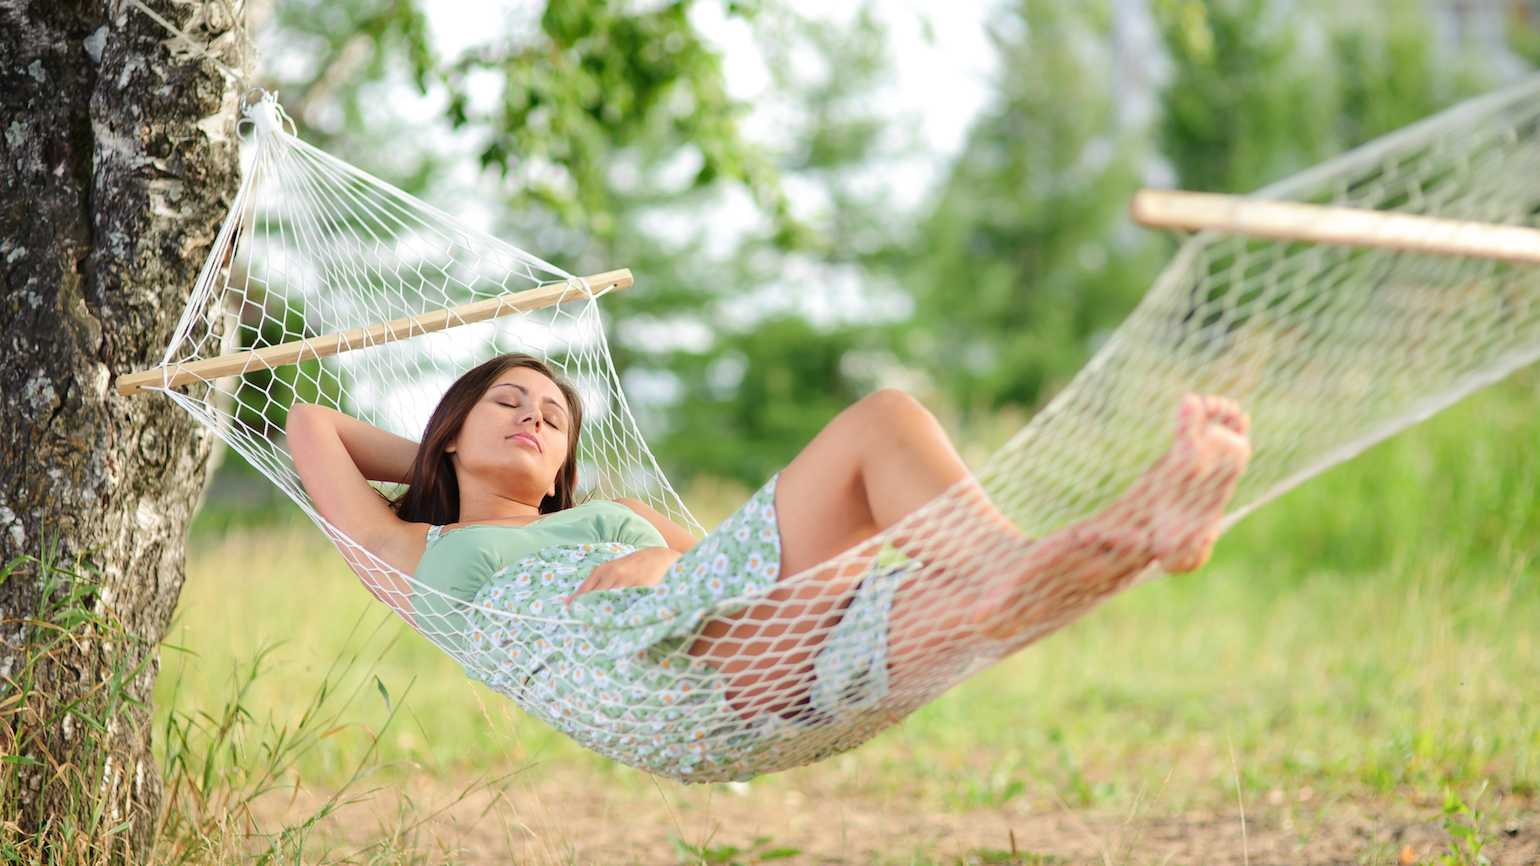 5 Bible verses that encourage rest.